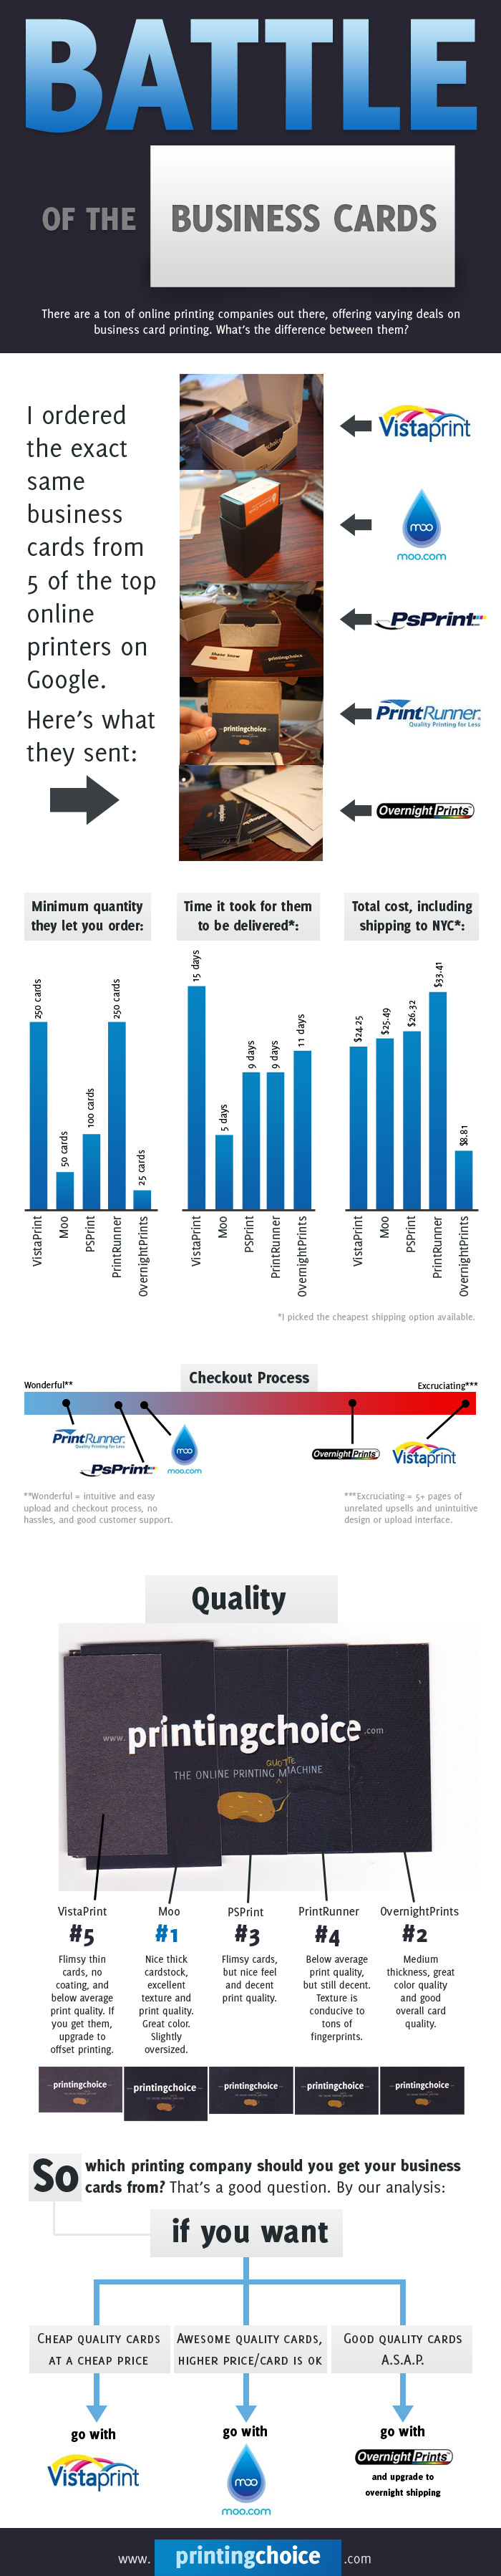 Battle of the business cards - comparison of printing companies ...